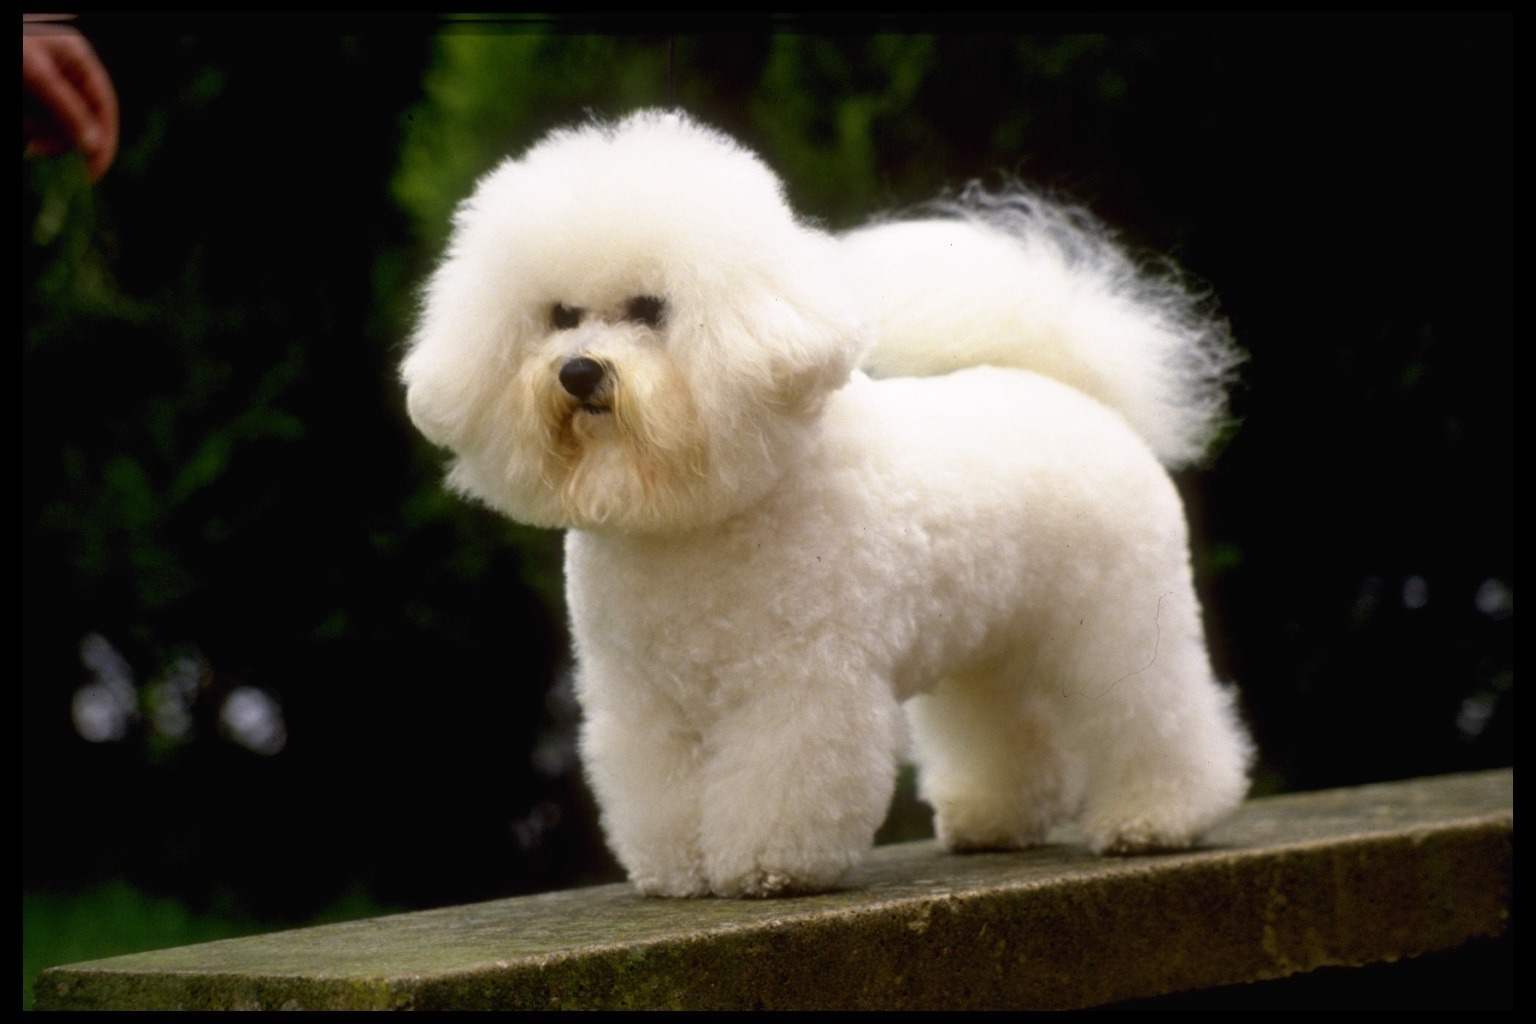 bichon frise  Dogs Photo 13248846  Fanpop